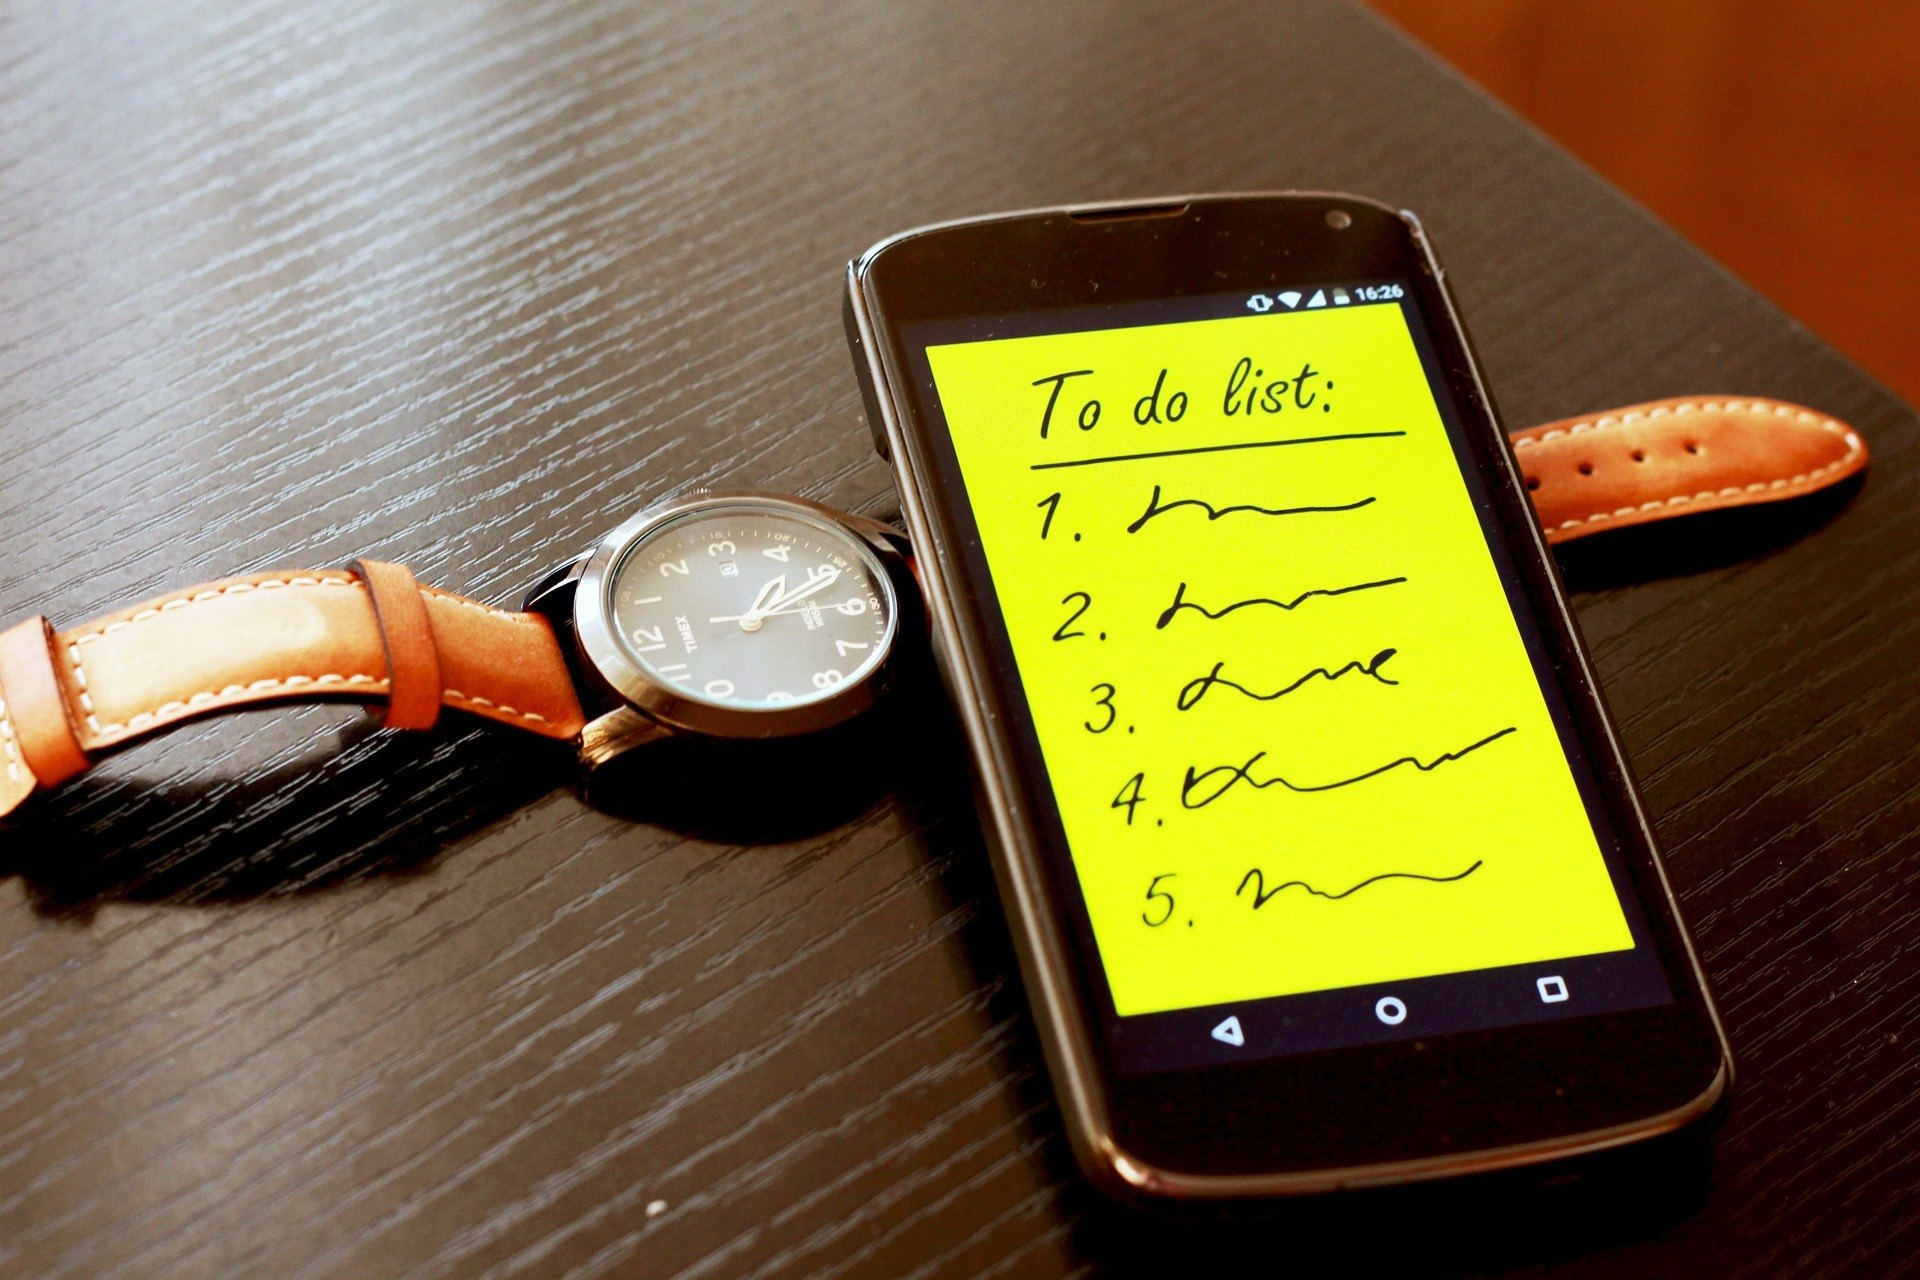 Cellphone with to do list written on it and a watch underneath